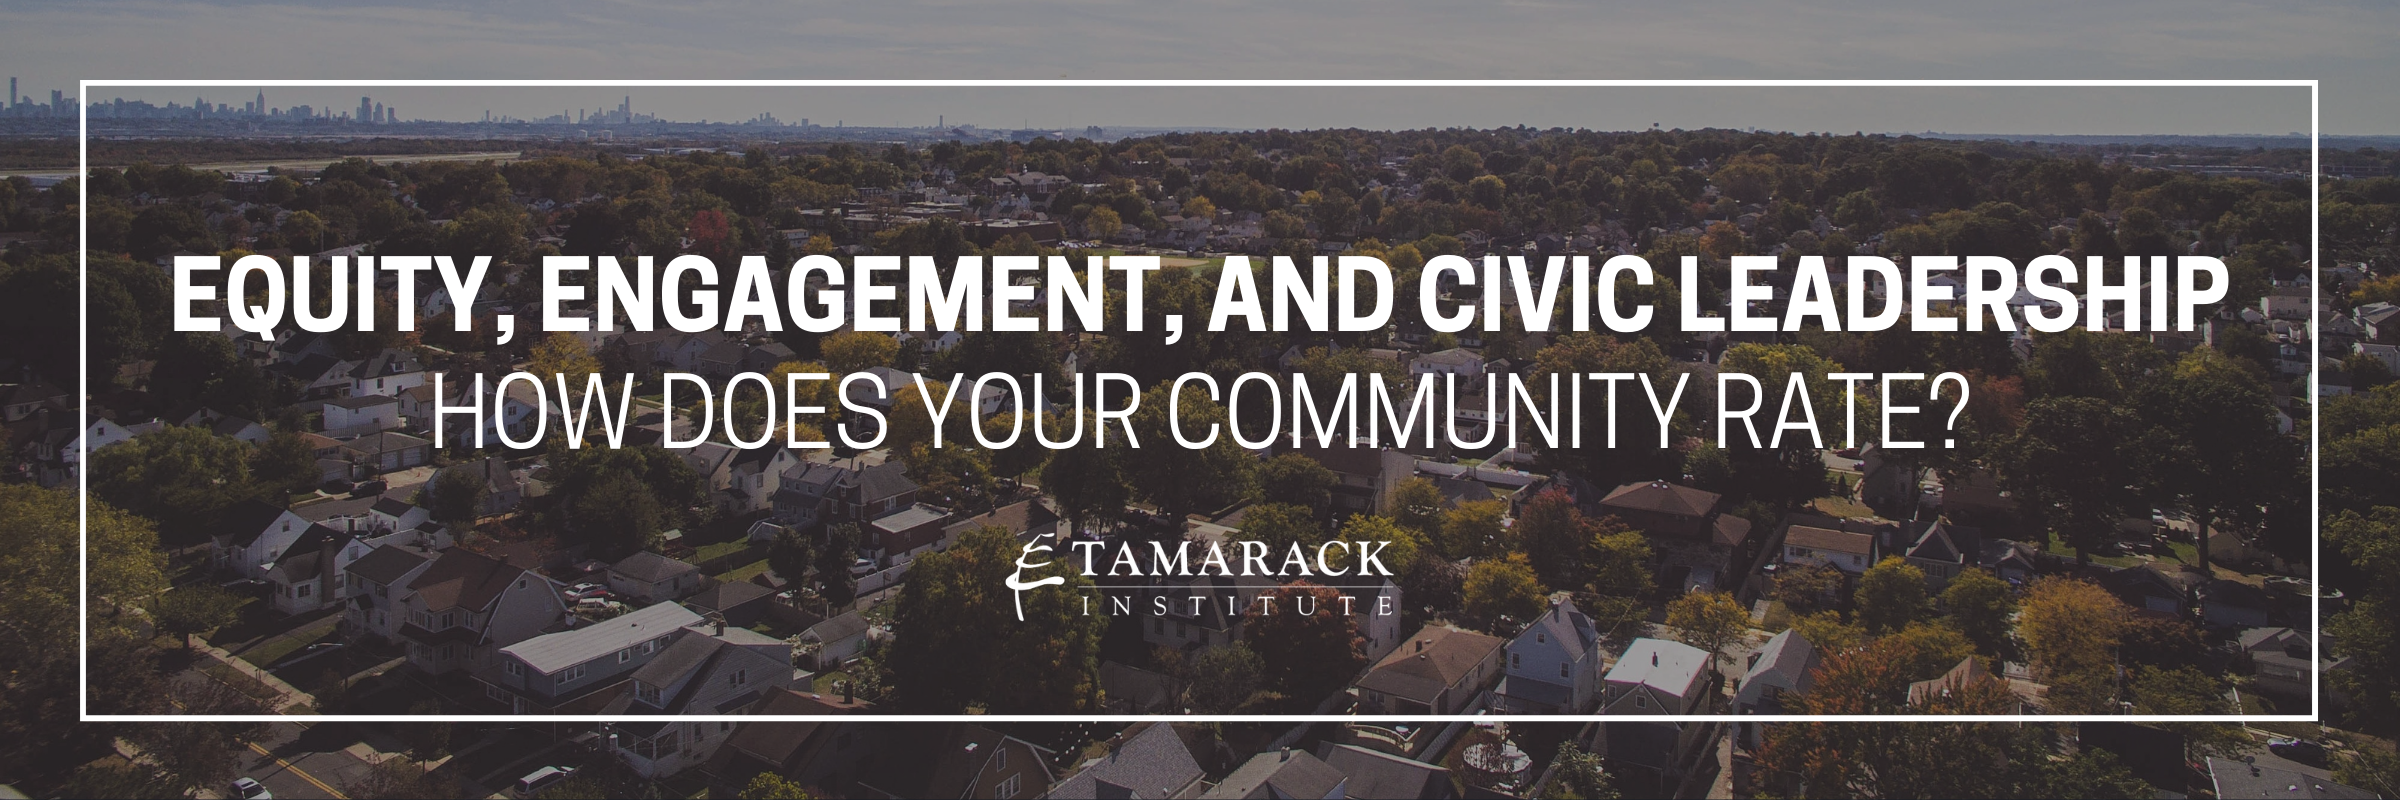 2021 Webinar Equity, Engagement, and Civic Leadership (1)